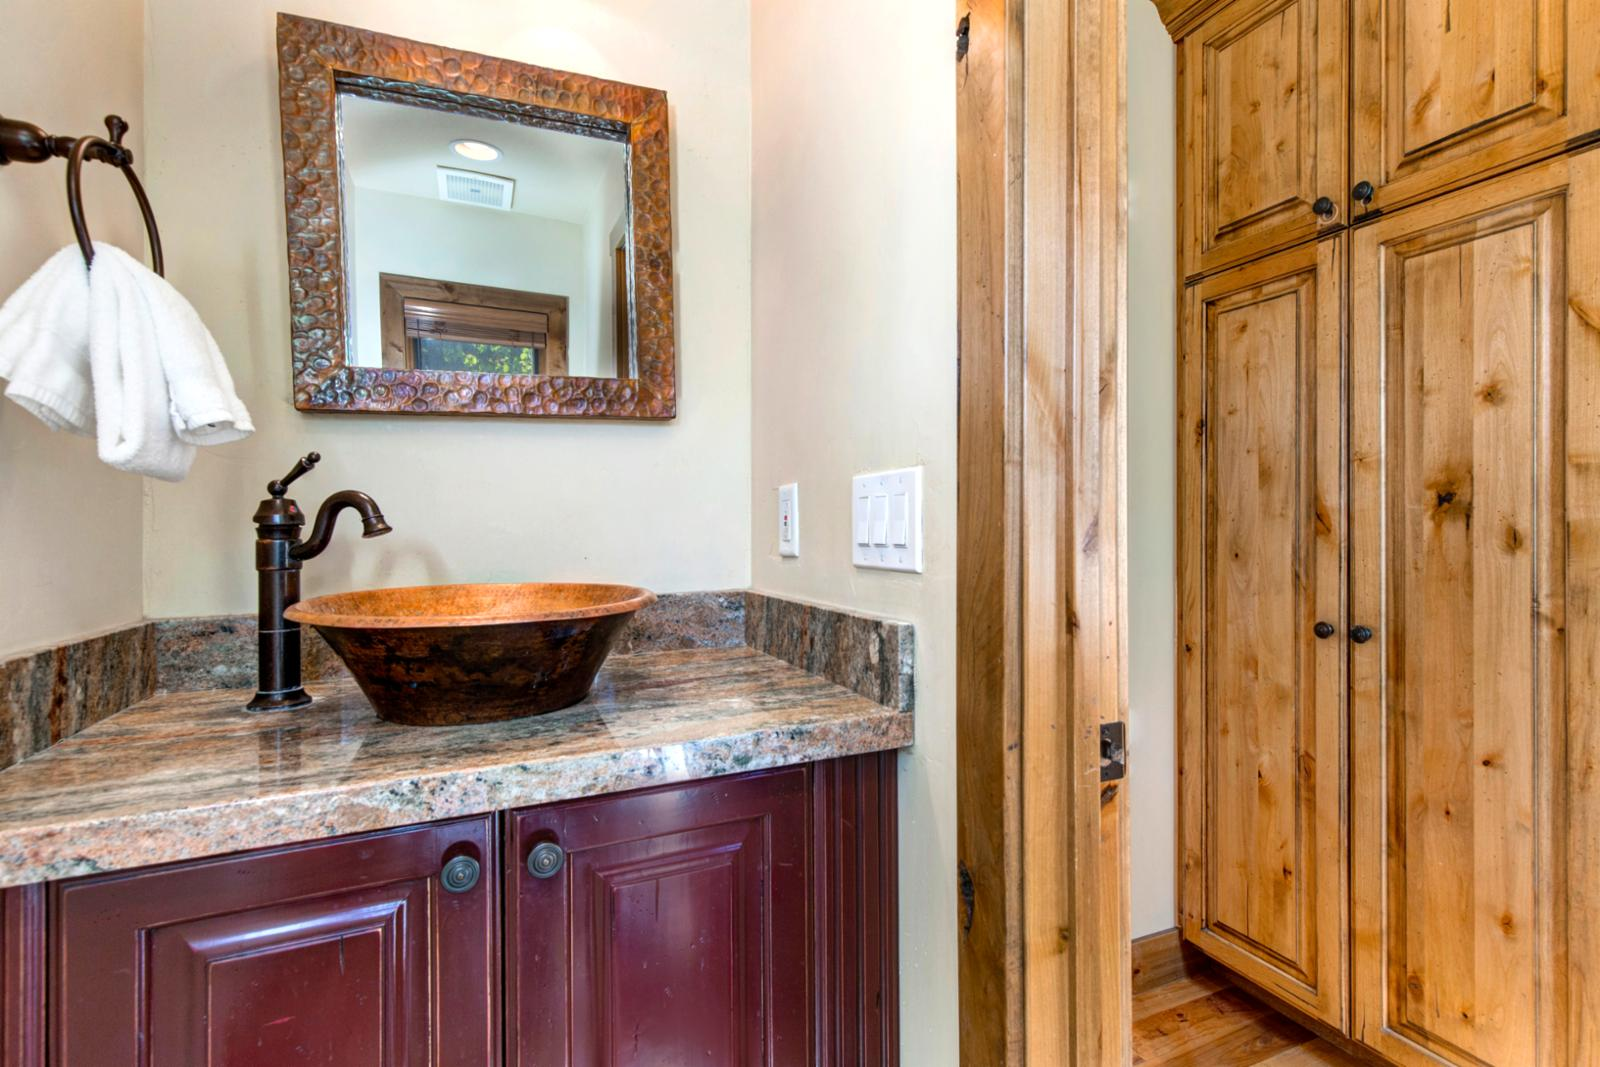 Discreet powder room off of the kitchen